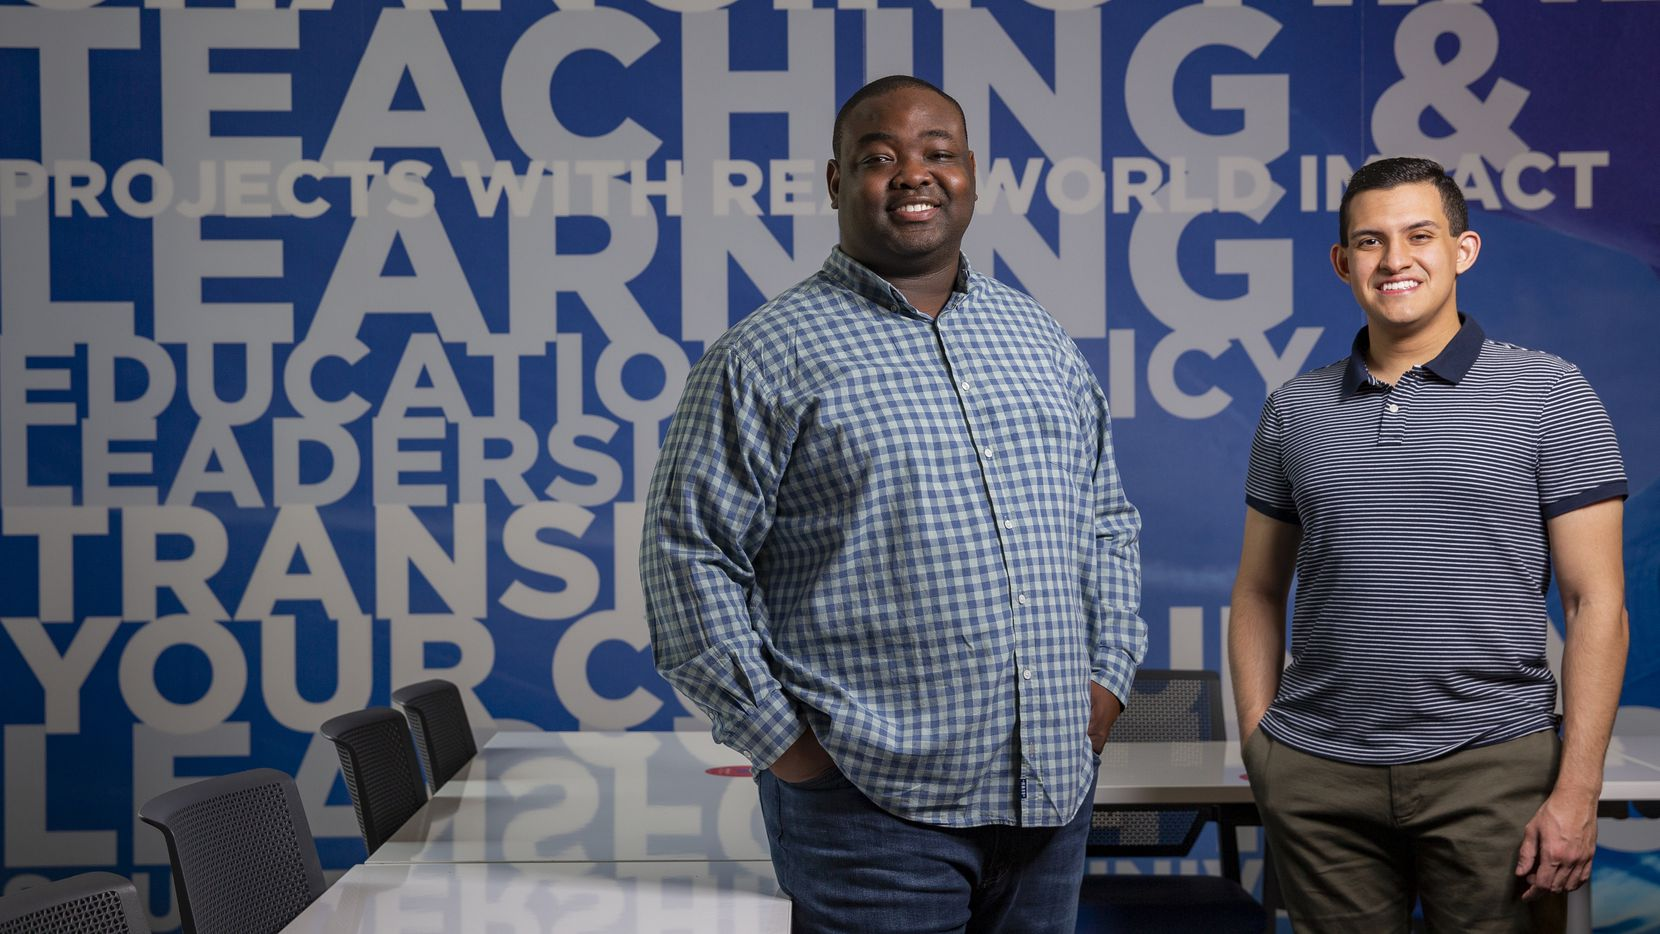 Greg Weatherford II (left) and Alex Quian who are the co-founders of Young Leaders for Change, pose for a photo on Monday at SMU in Dallas. Their new podcast, Mentor Moments, launched Tuesday, seeks to provide missing mentorship and advice due to cancelled internships for students.